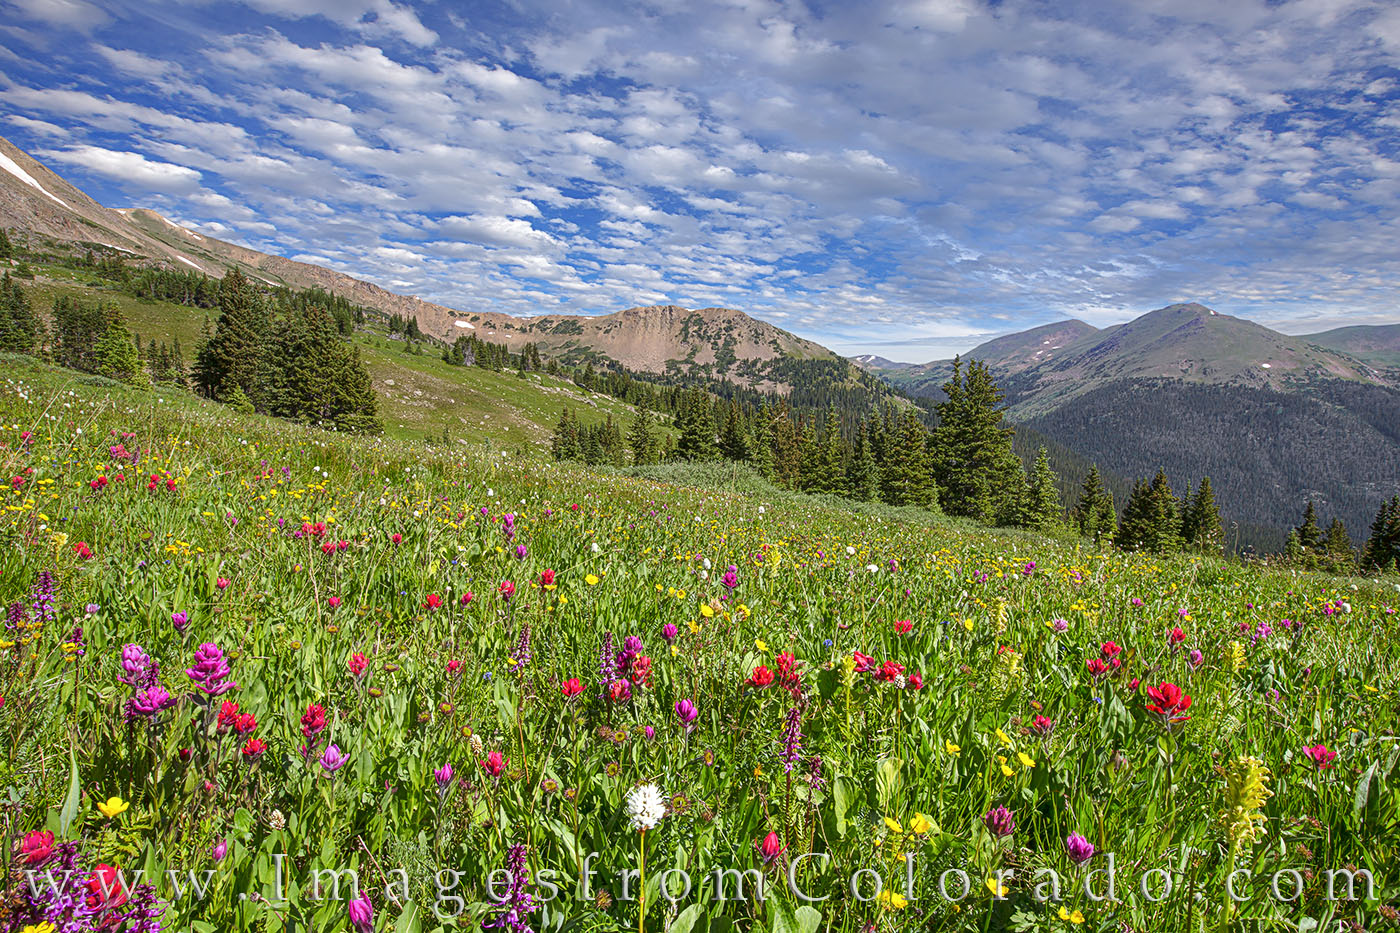 wildflowers, paintbrush, butler gulch, highway 40, winter park, berthoud pass, alpine flowers, summer, afternoon, photo